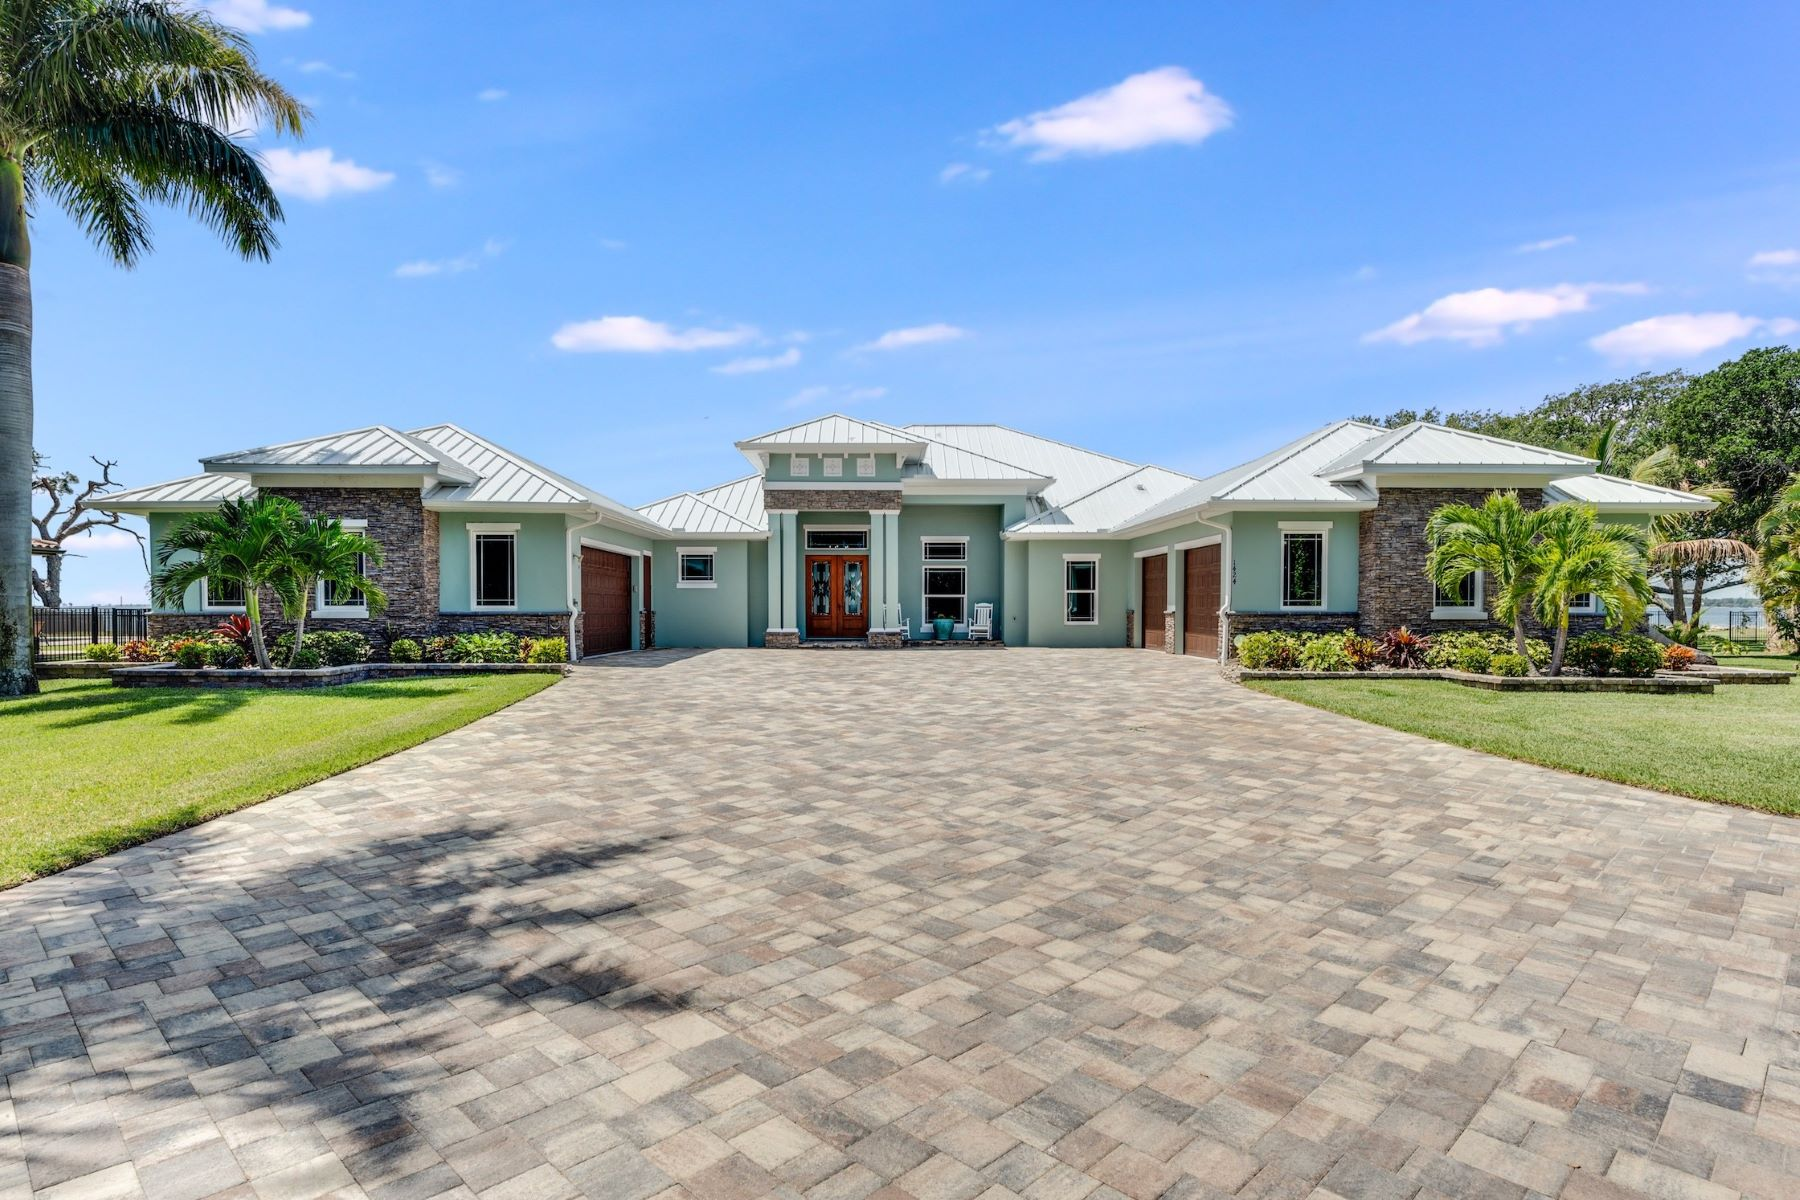 Property for Sale at 1424 S Riverside Drive, Indialantic, FL 1424 S Riverside Drive Indialantic, Florida 32903 United States